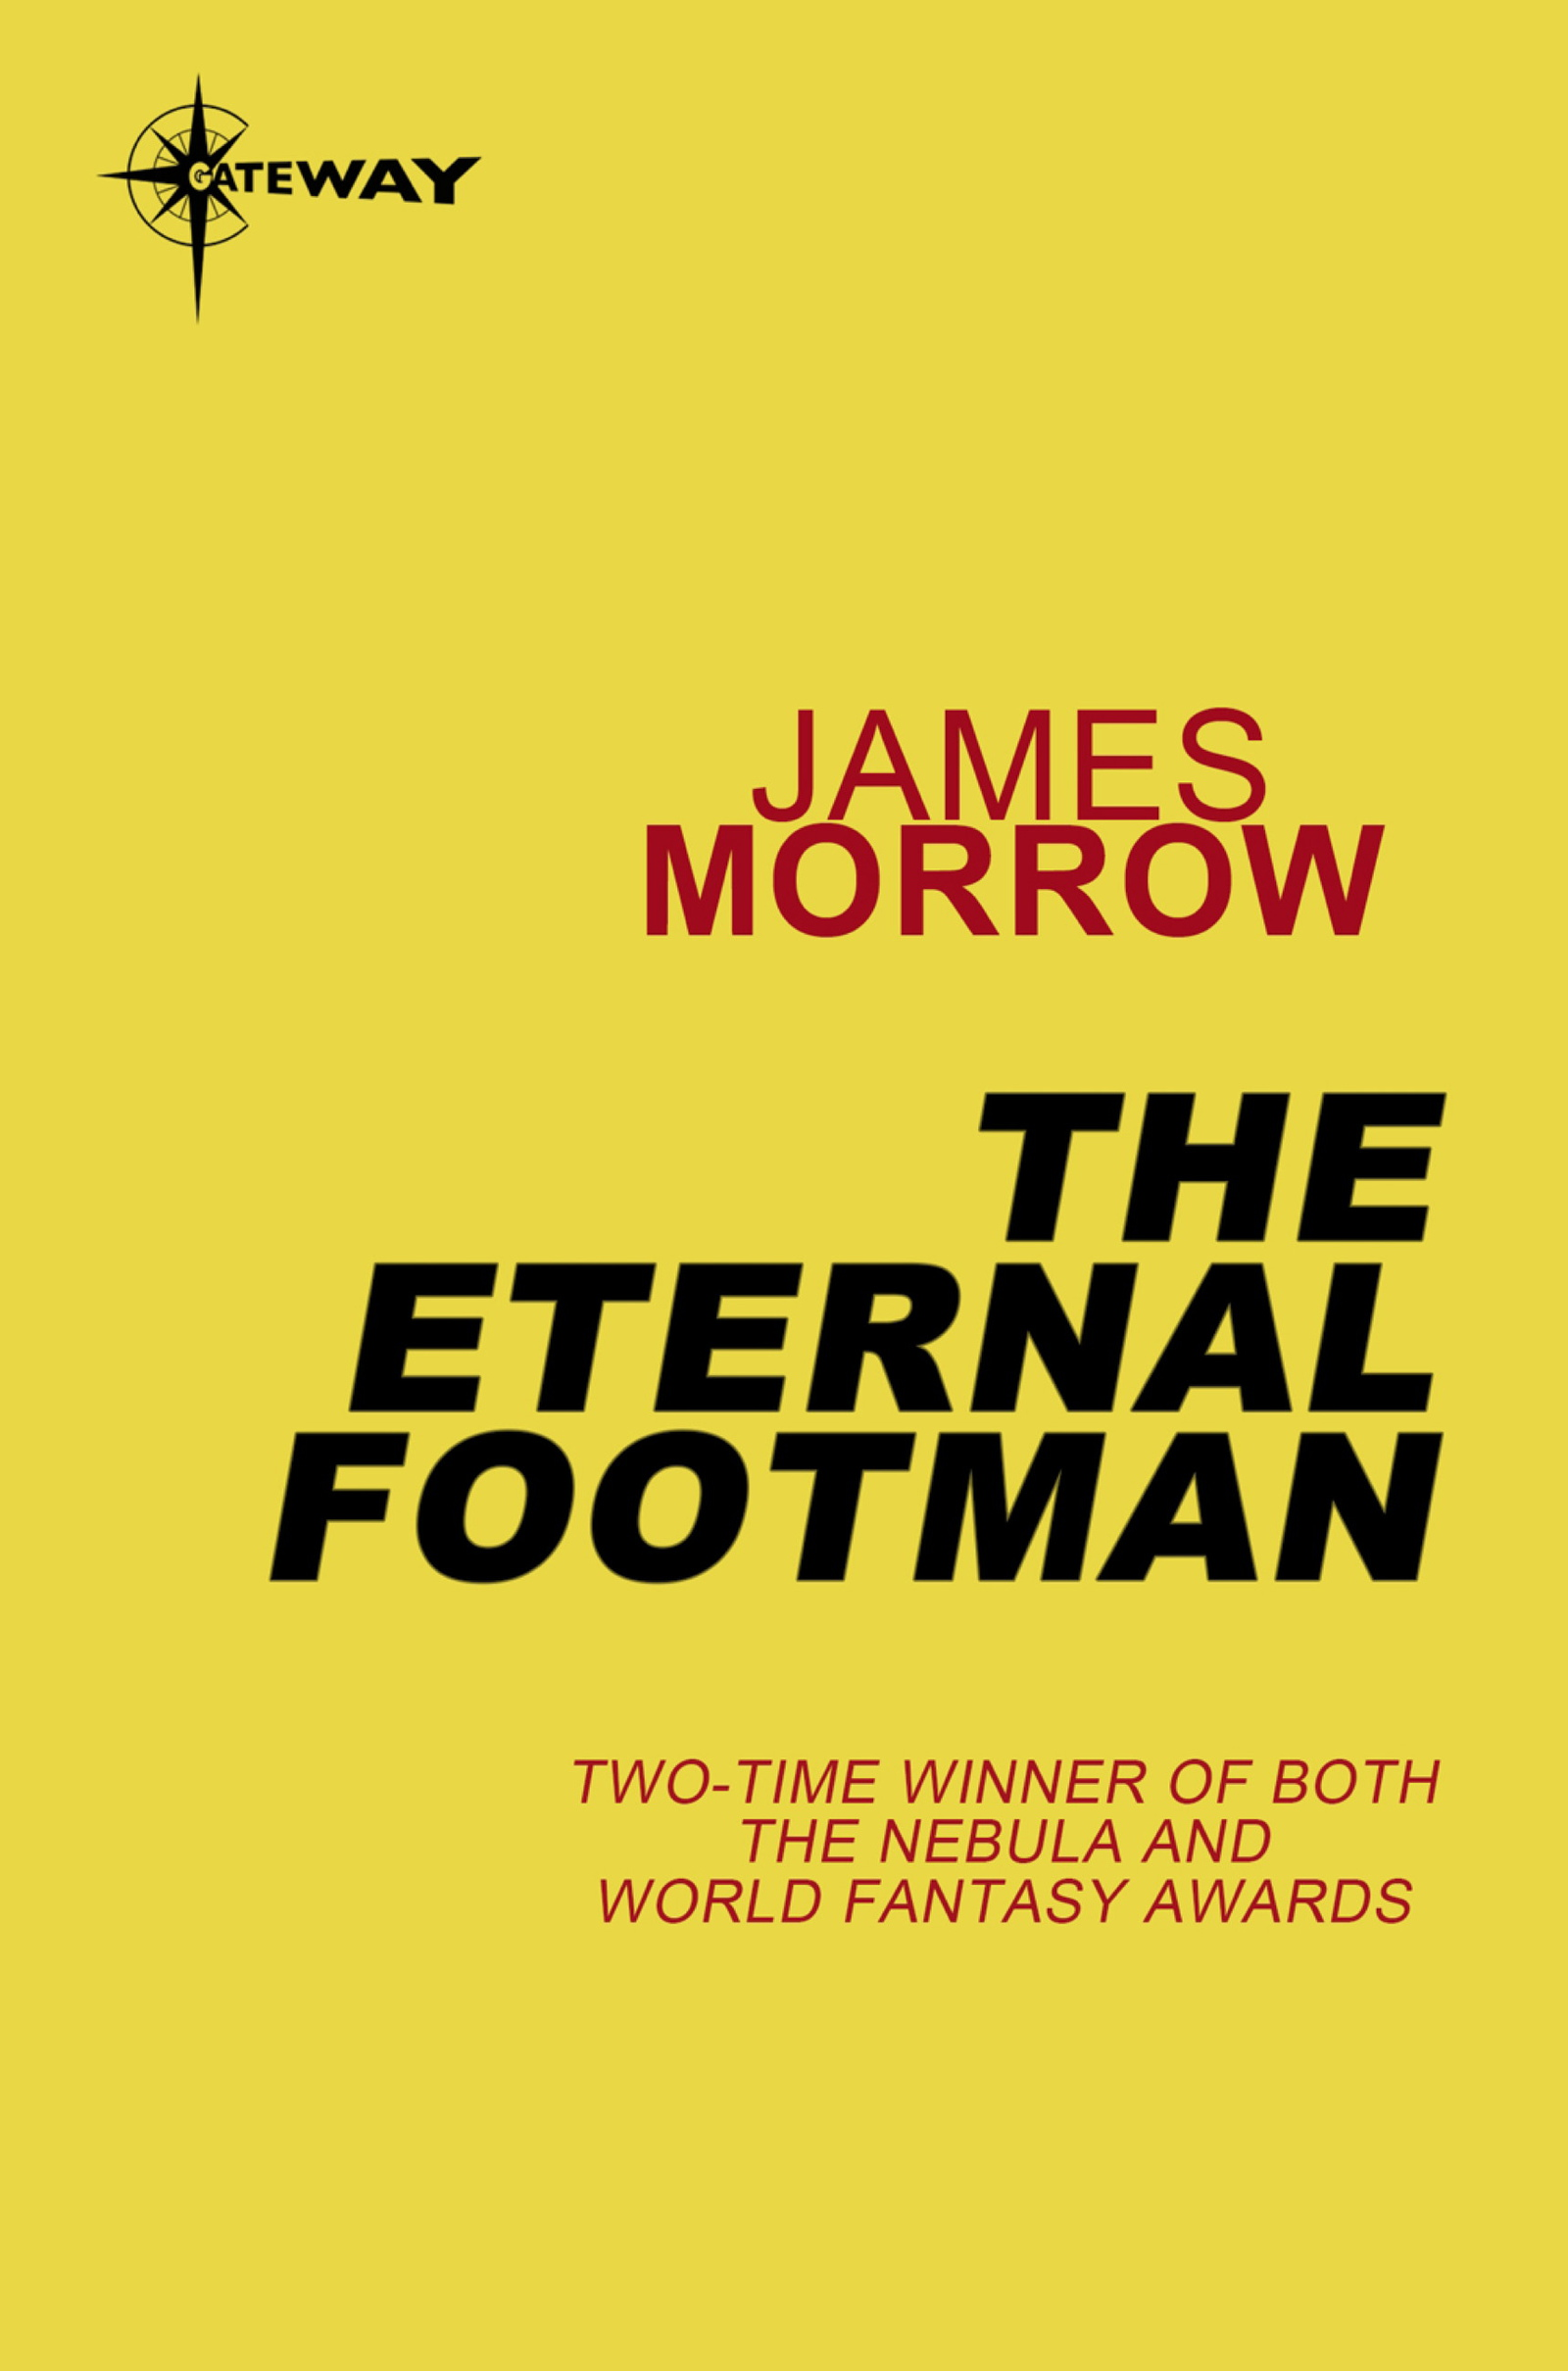 The Eternal Footman